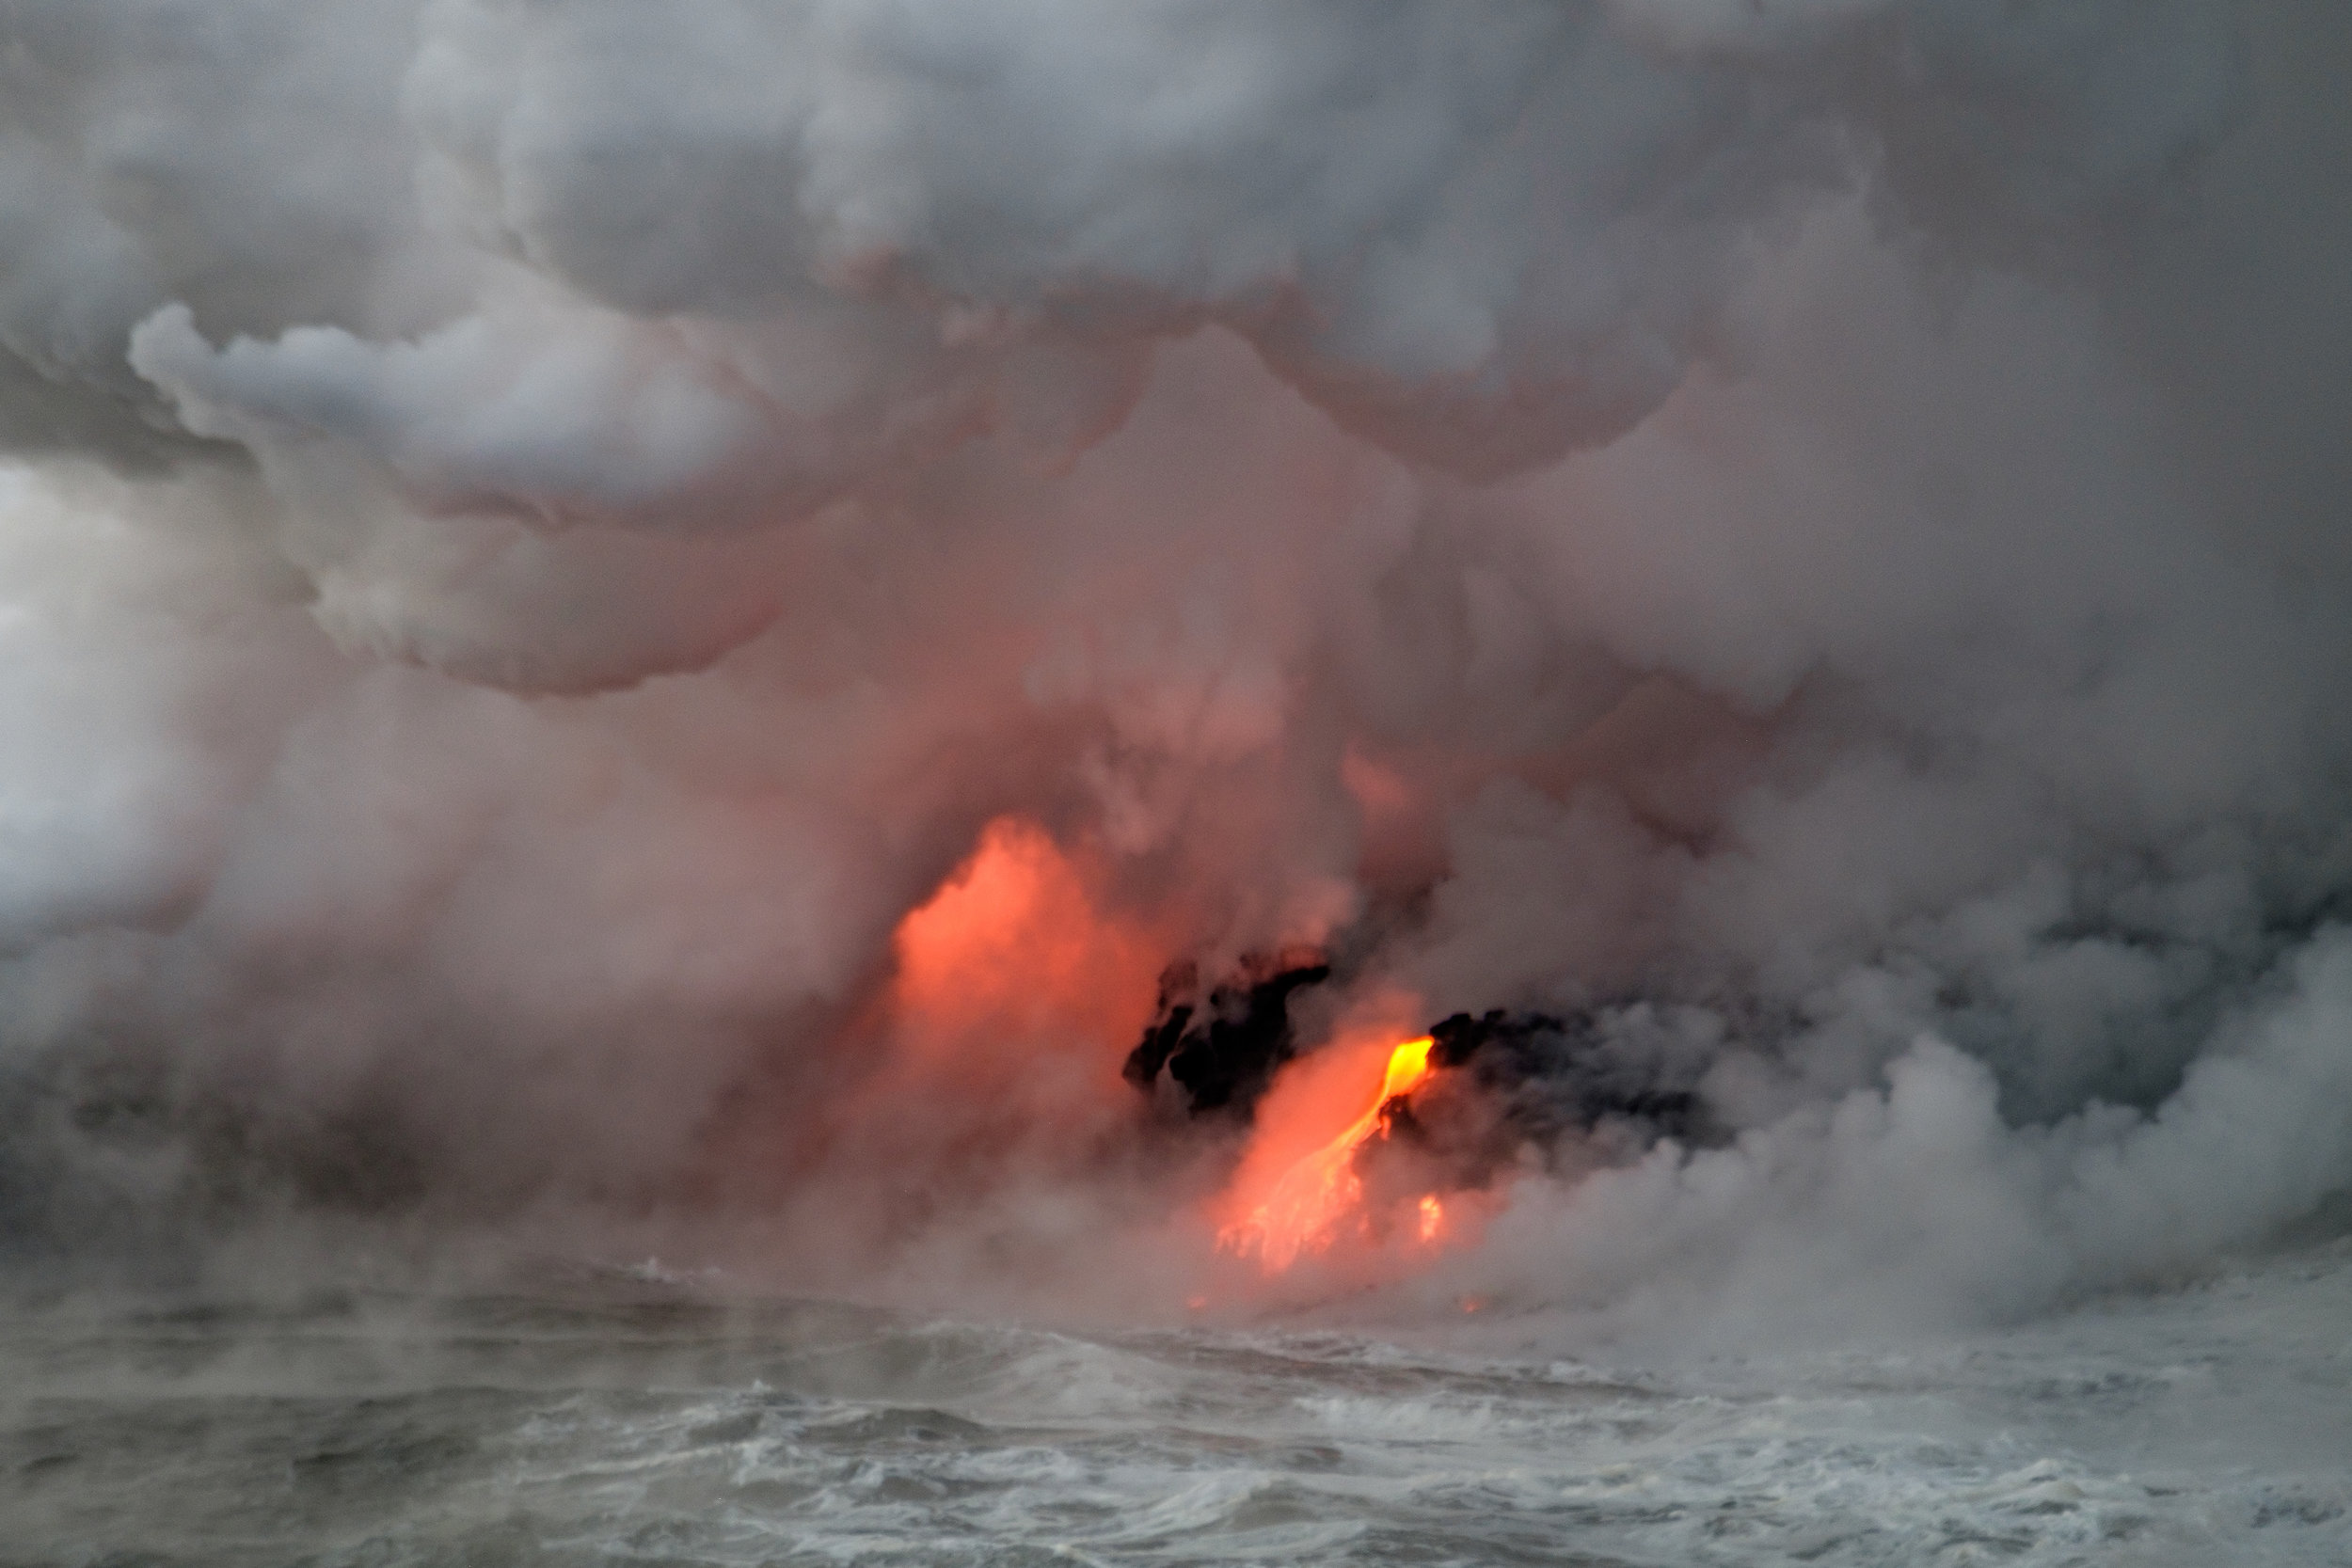 A meeting between Kīlauea and the Pacific Ocean.